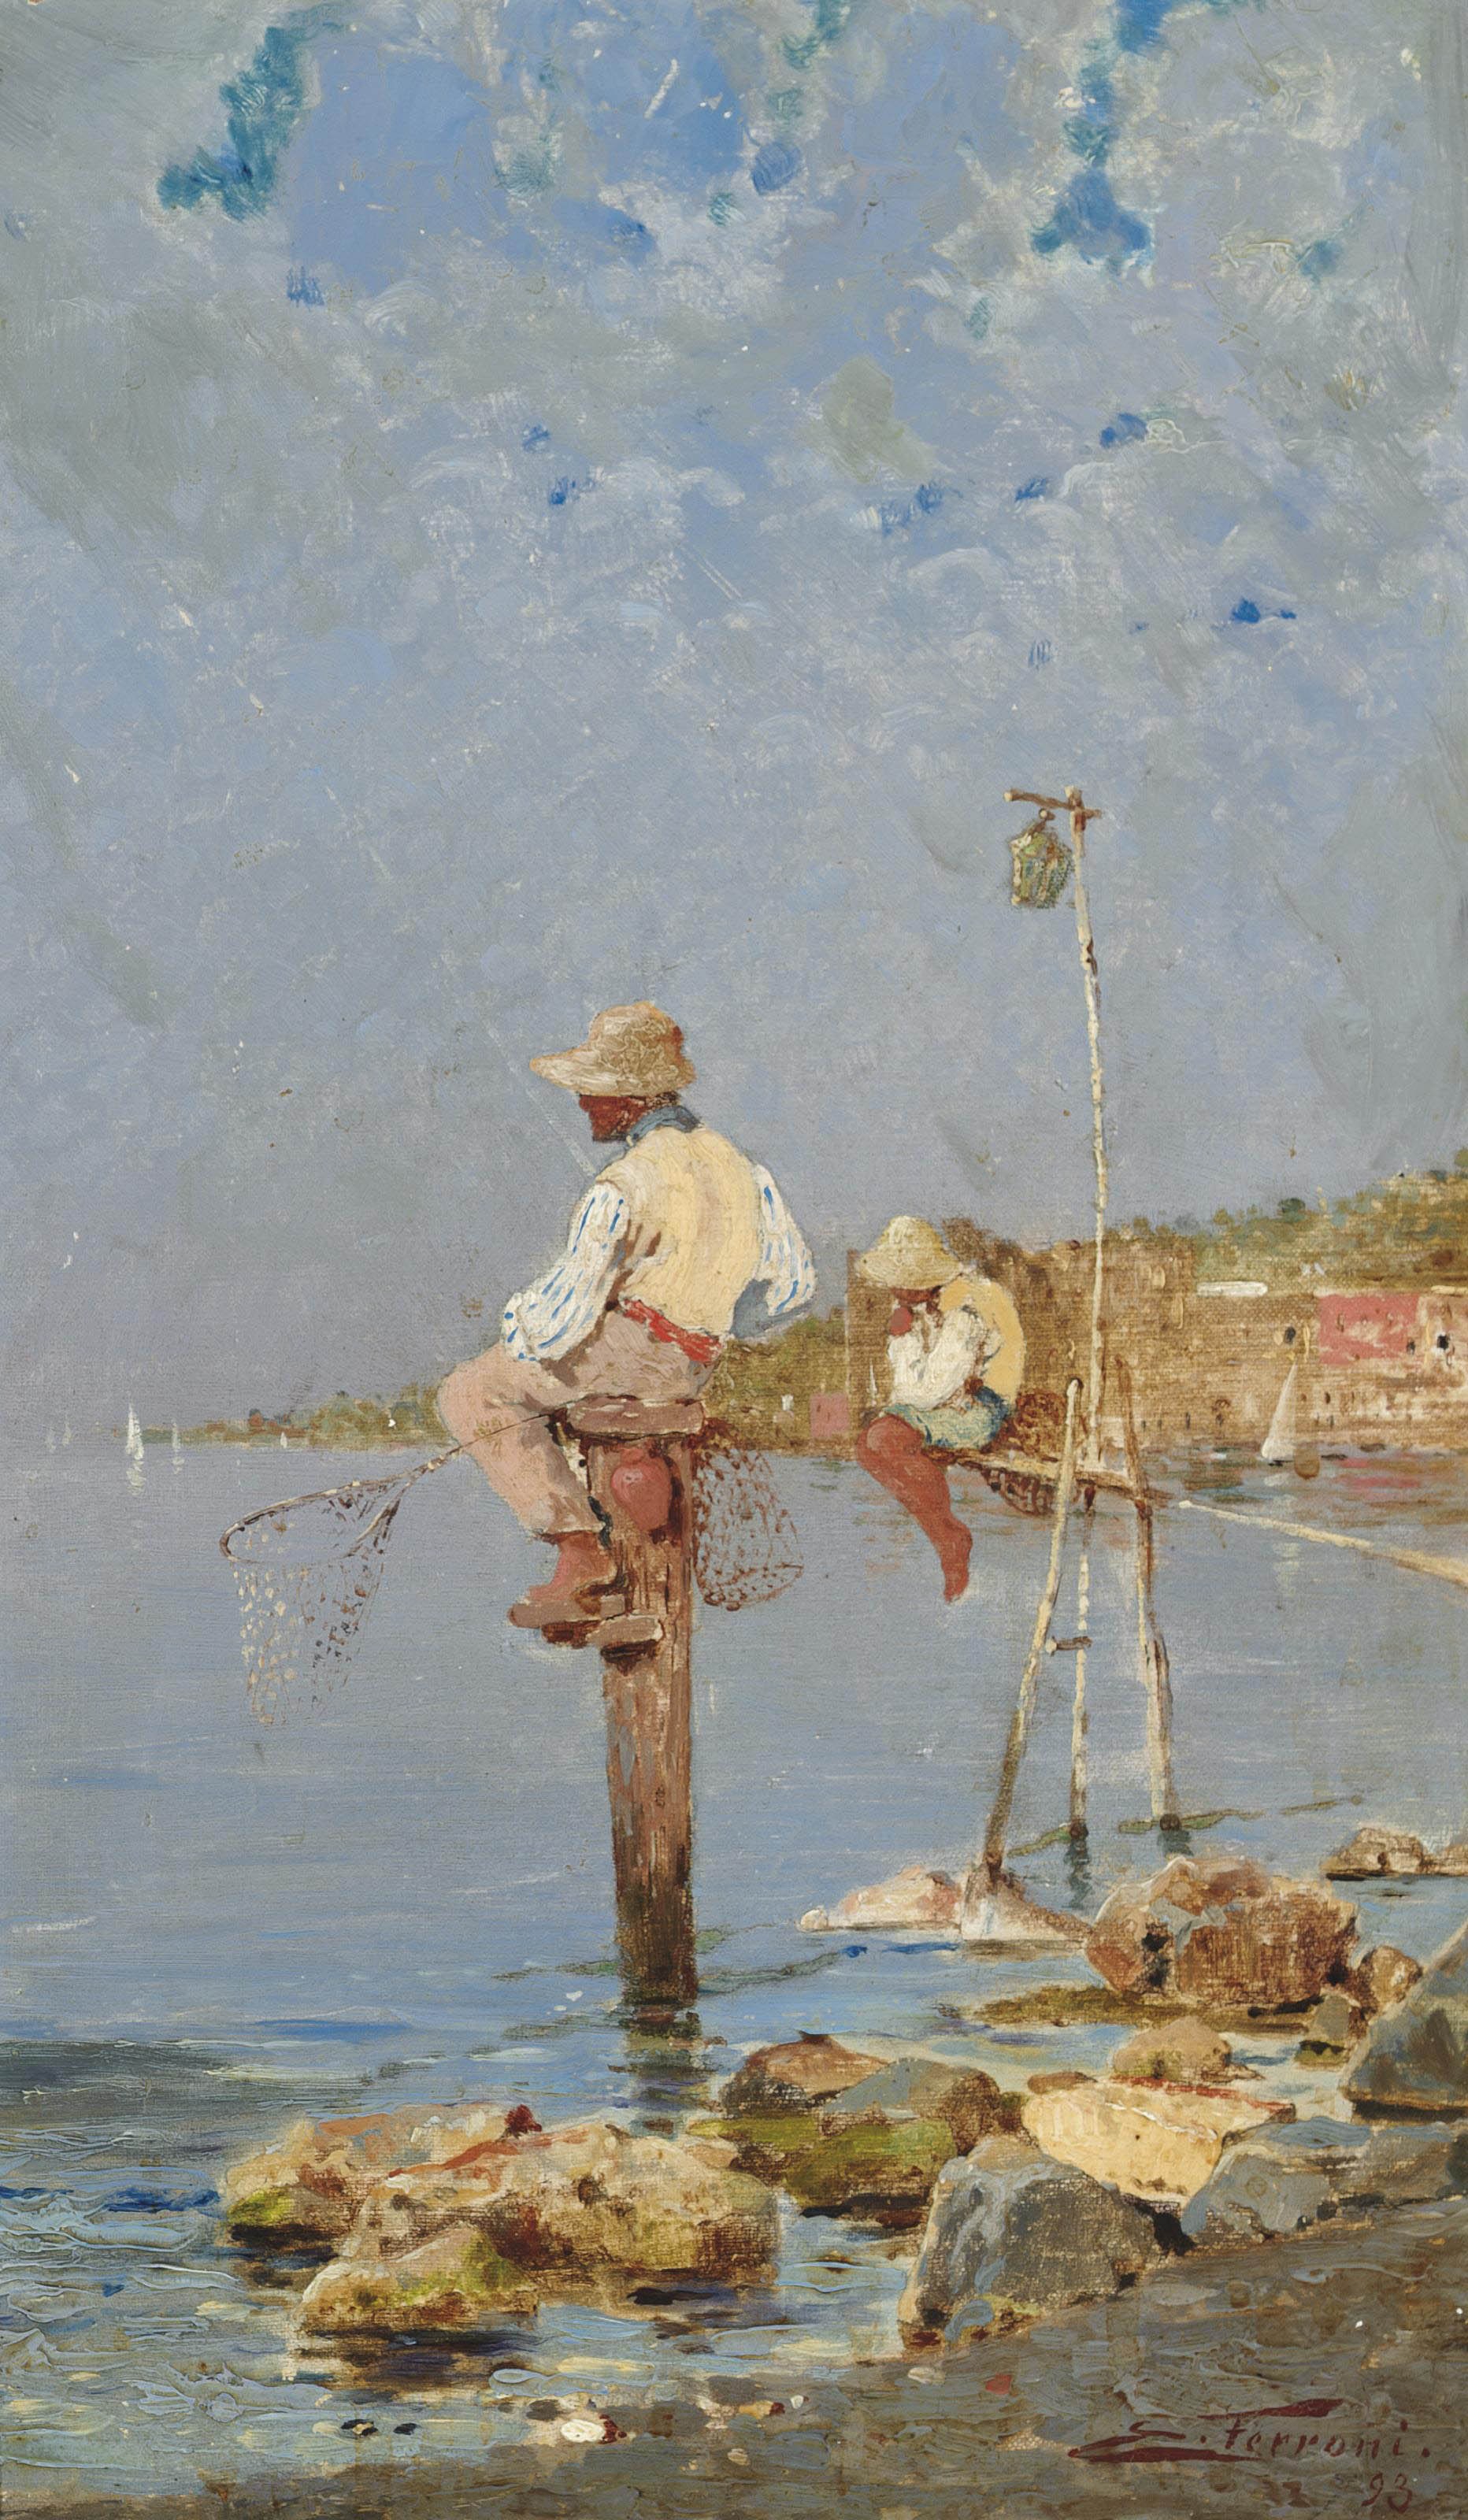 Boys fishing on the Italian Coast